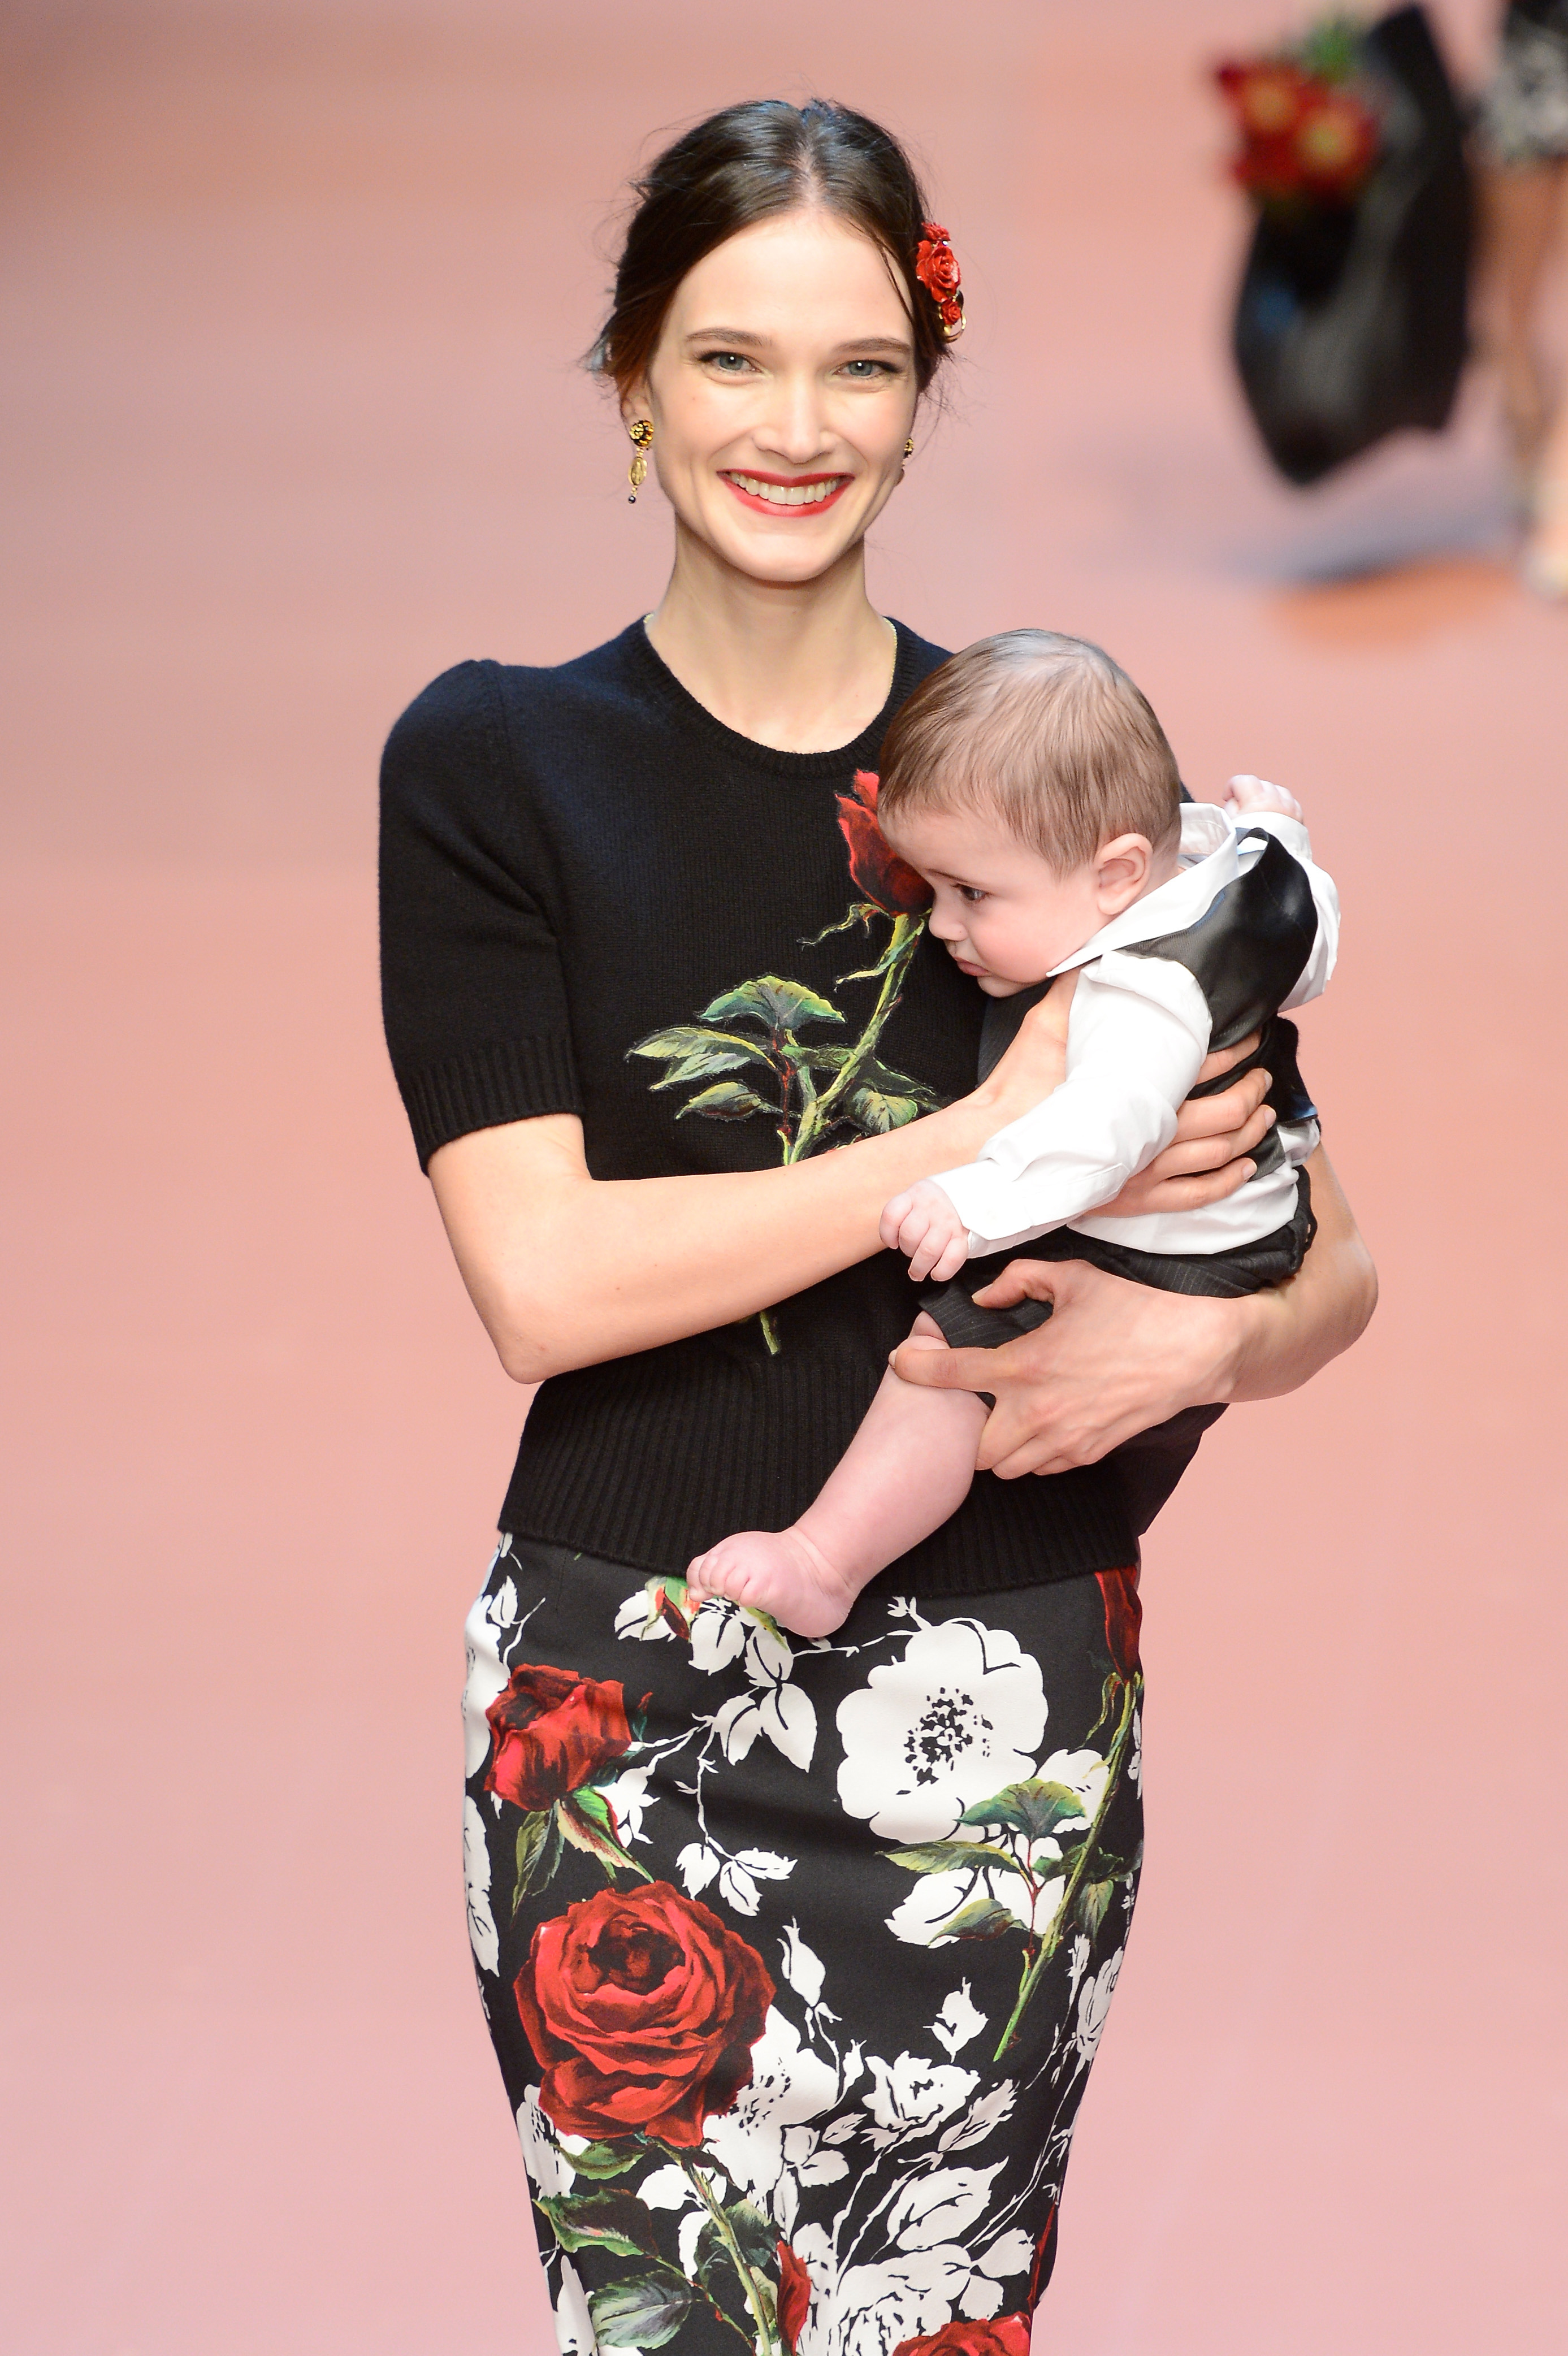 Dolce and Gabanna pregnant women on the runway